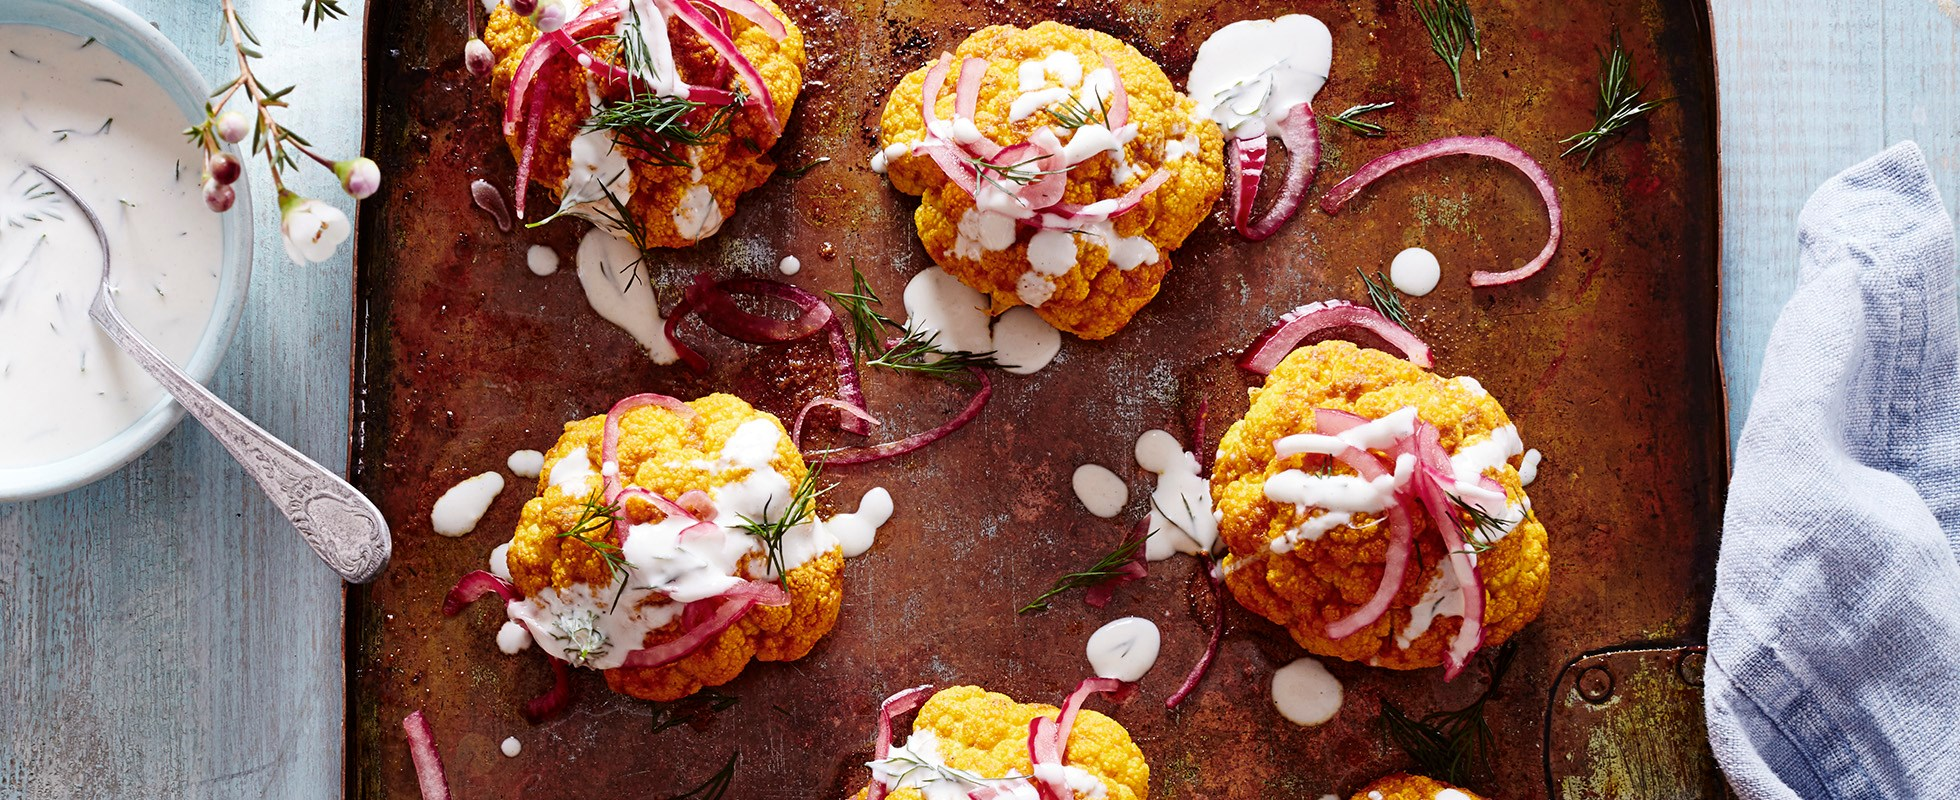 roasted cauliflower with pink onions